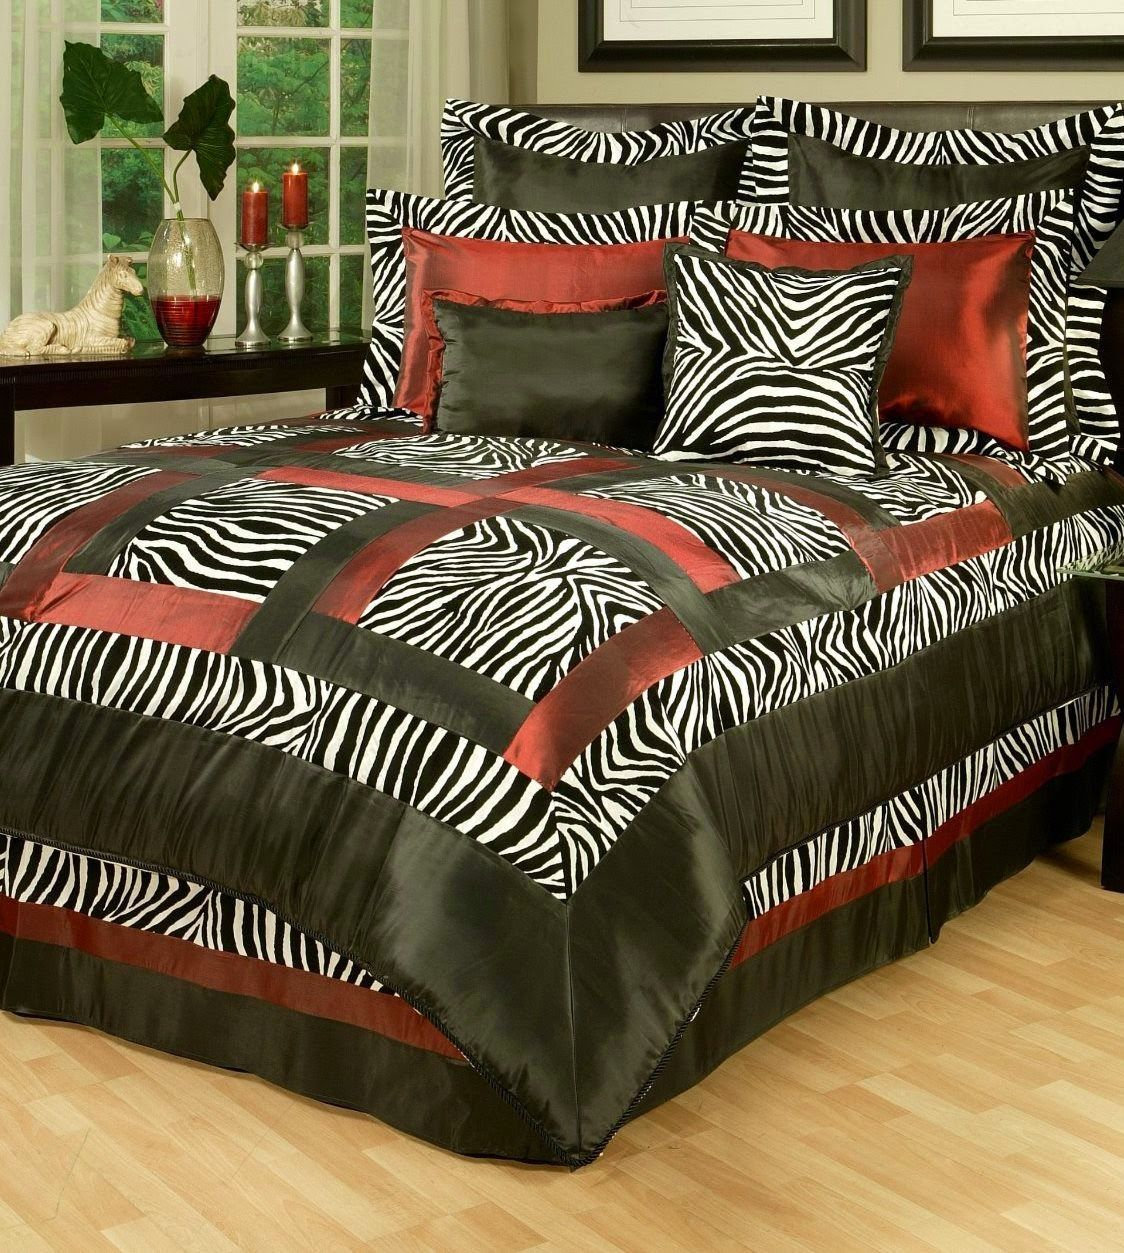 Patchwork bed sheets patterns - Bedroom Decor Ideas And Designs Top Ten Animal Pattern Bedding Sets For Adults